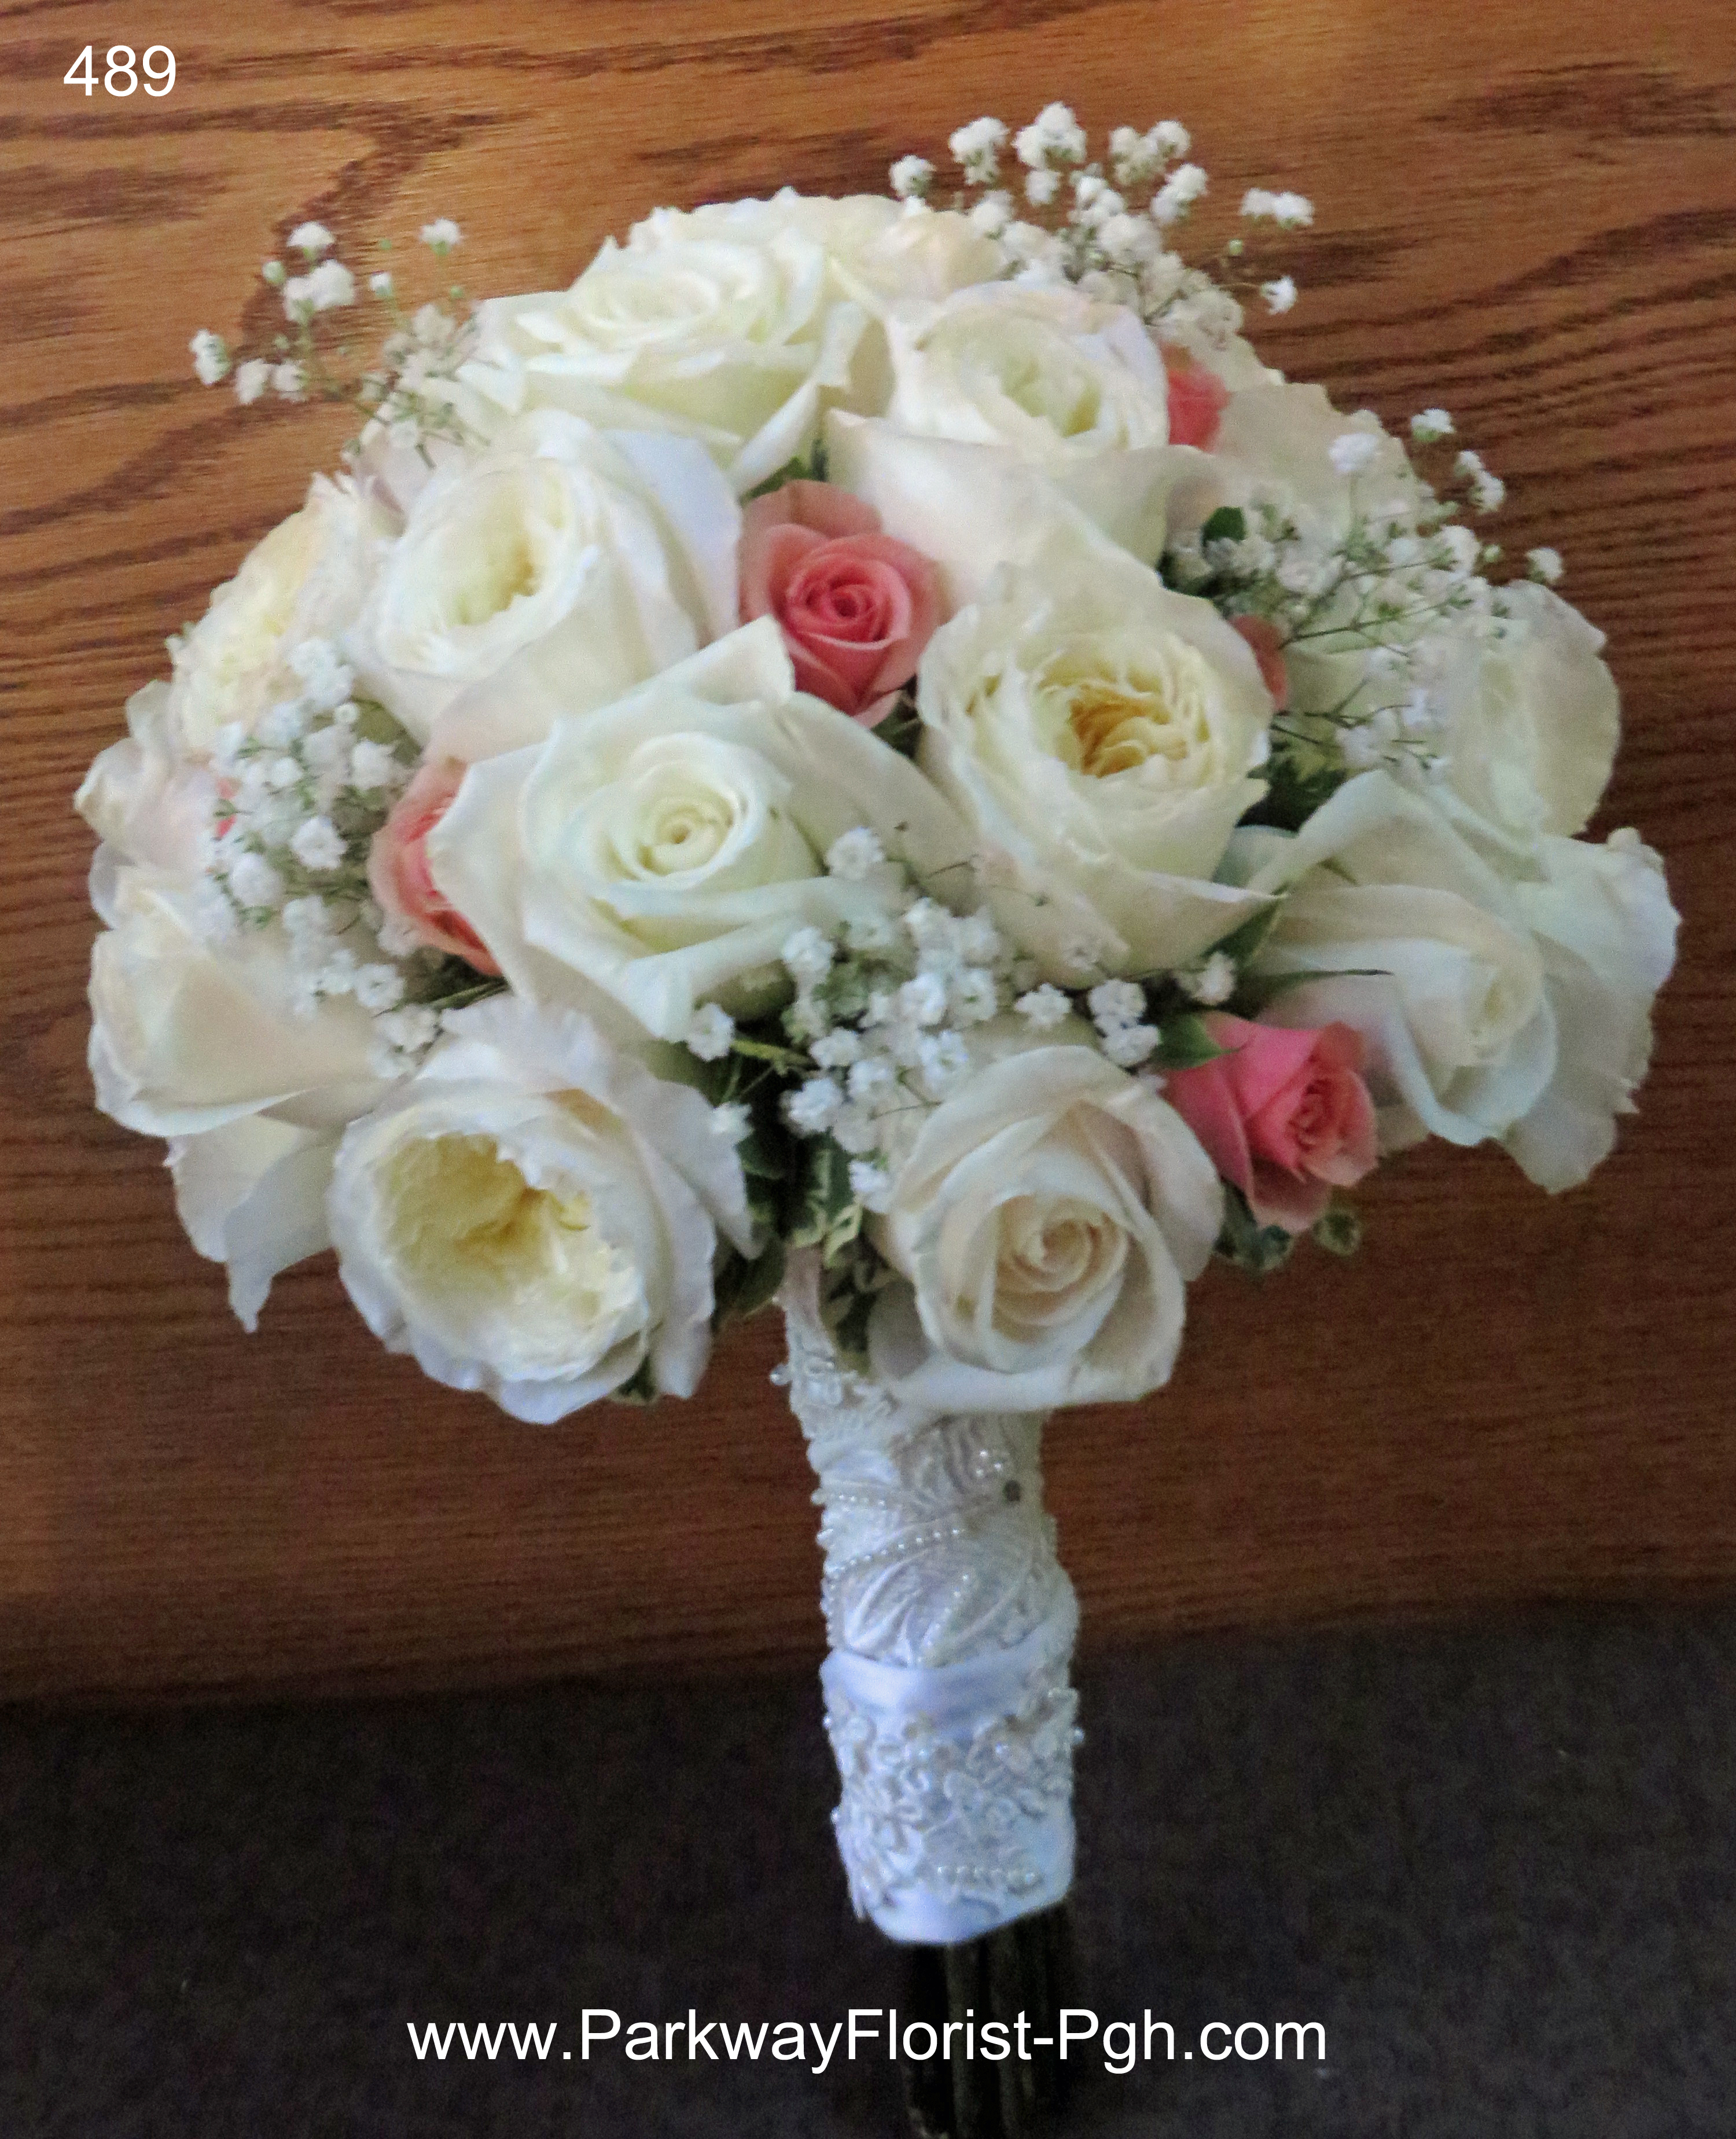 Coral Parkway Florist Pittsburgh Blog